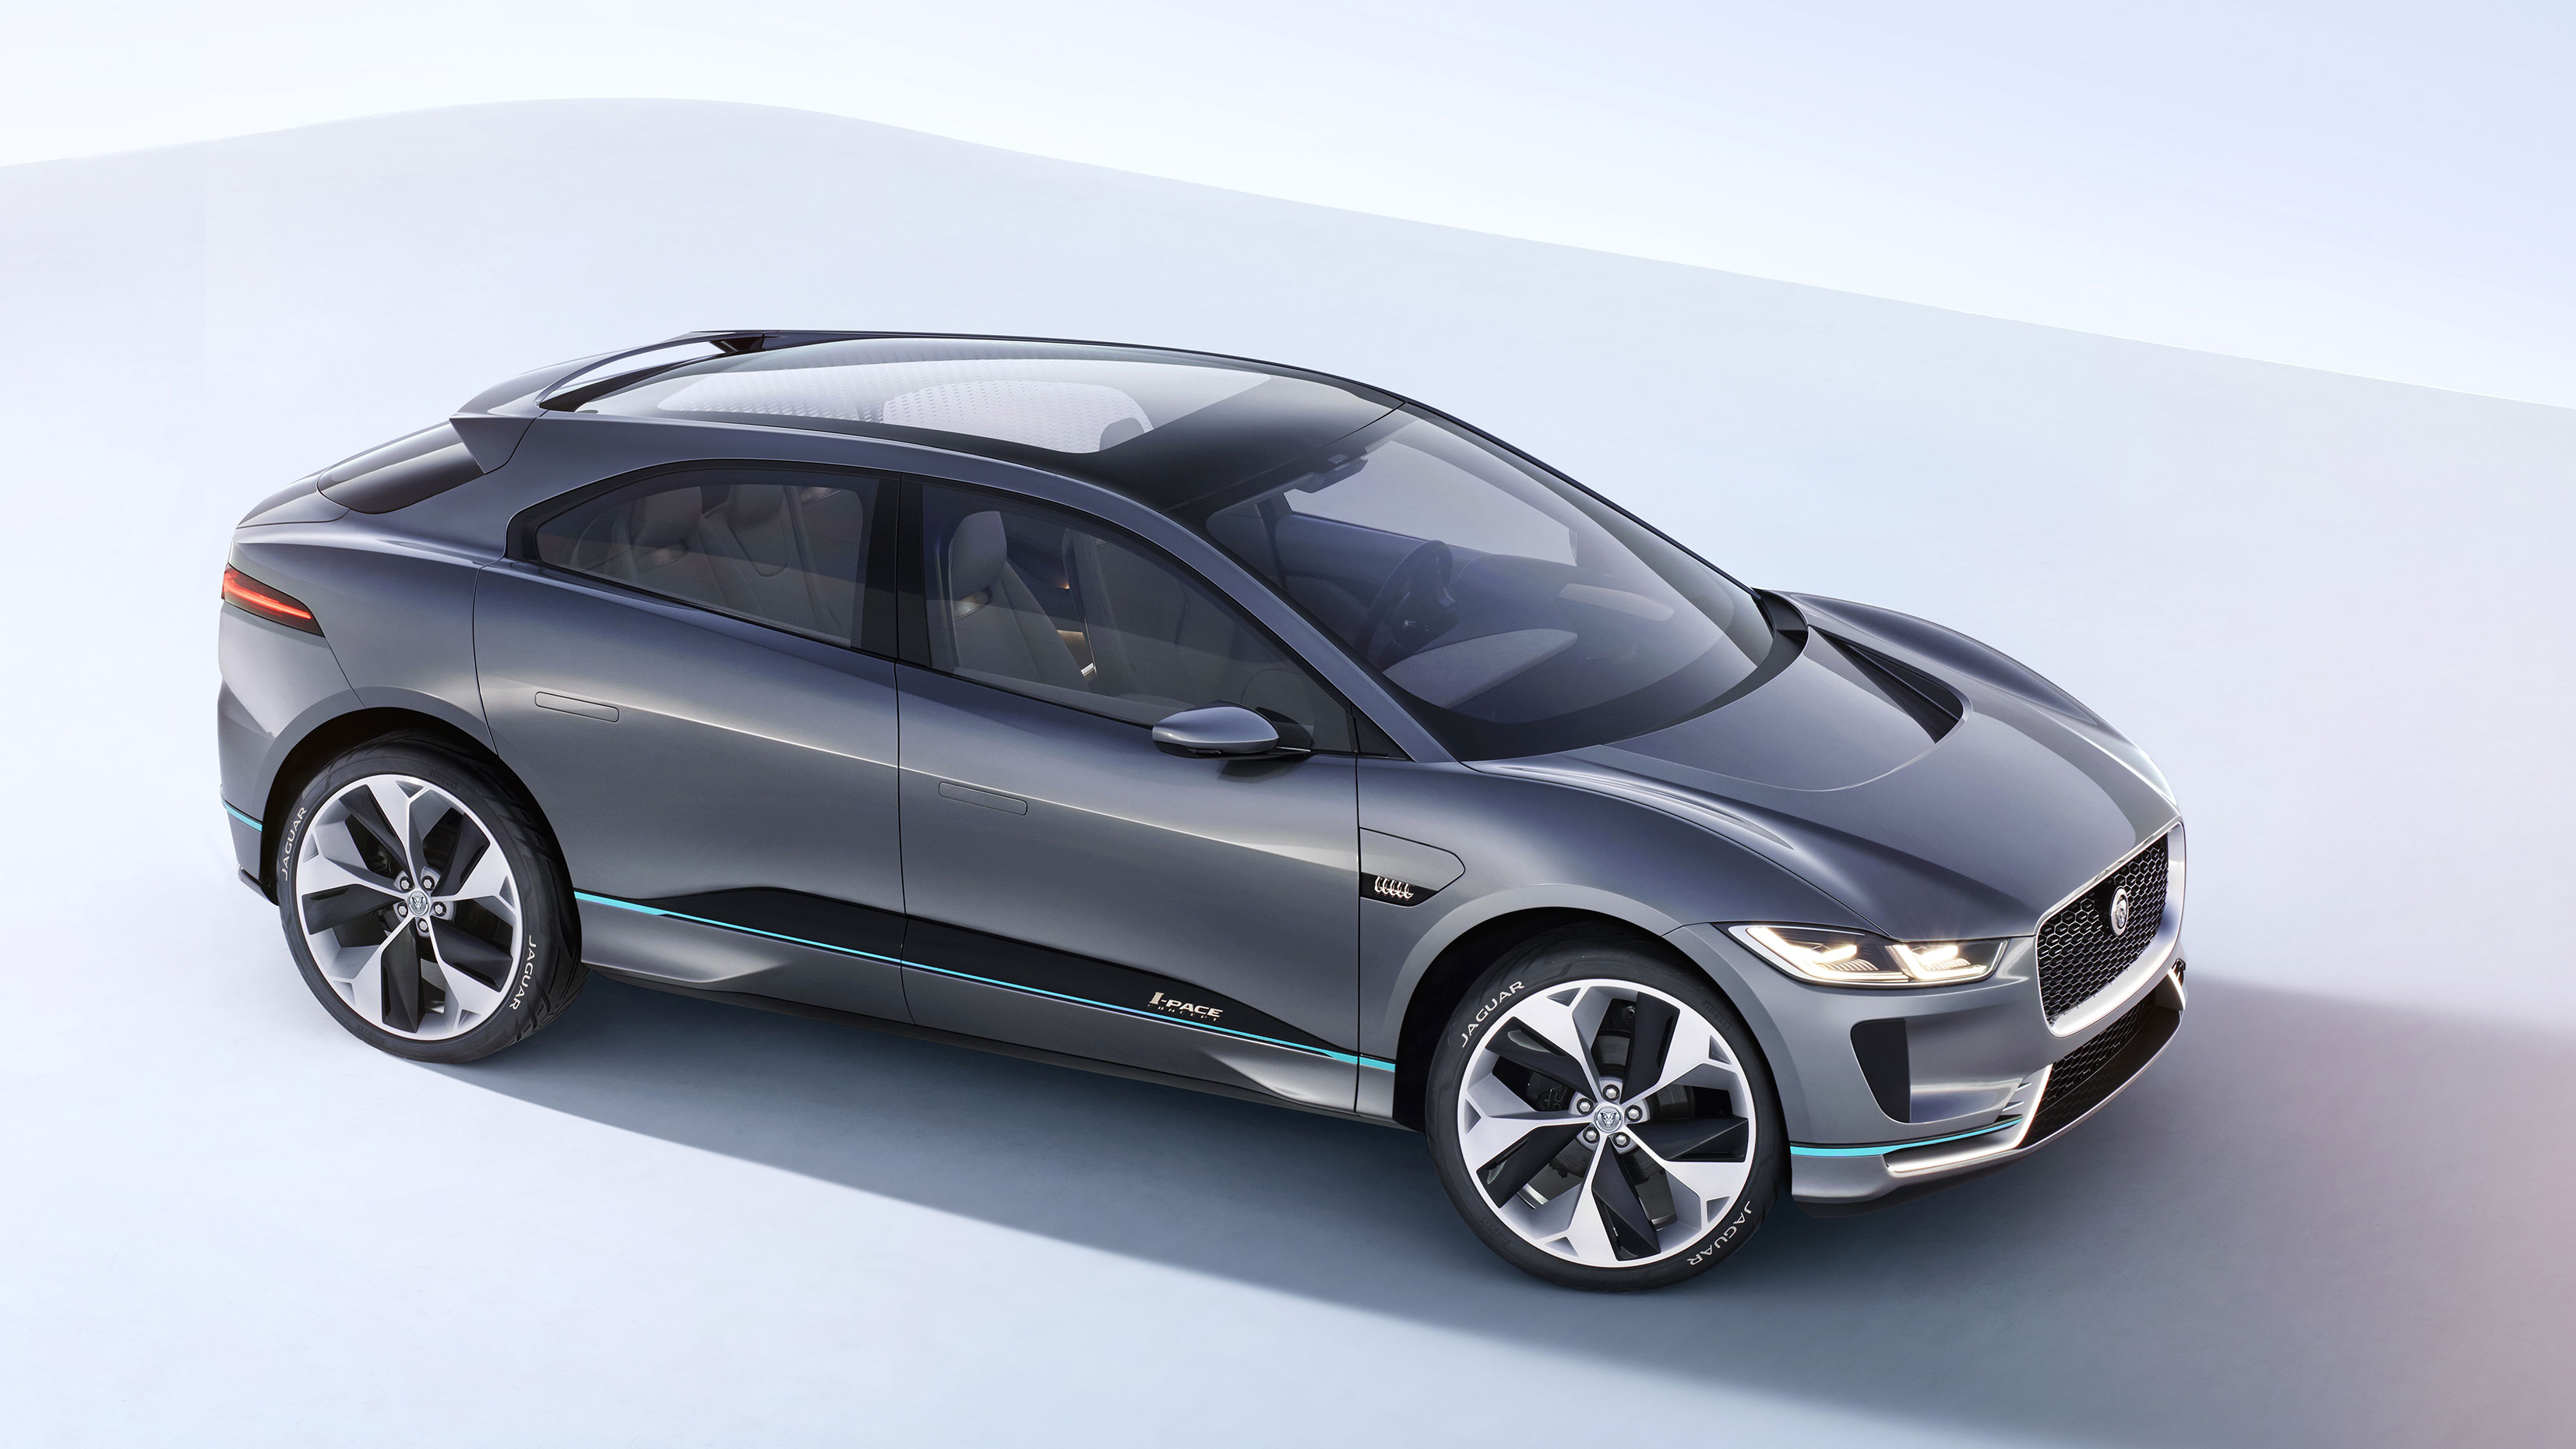 Jaguar S First All Electric Car Gives Us A Glimpse Of The Future